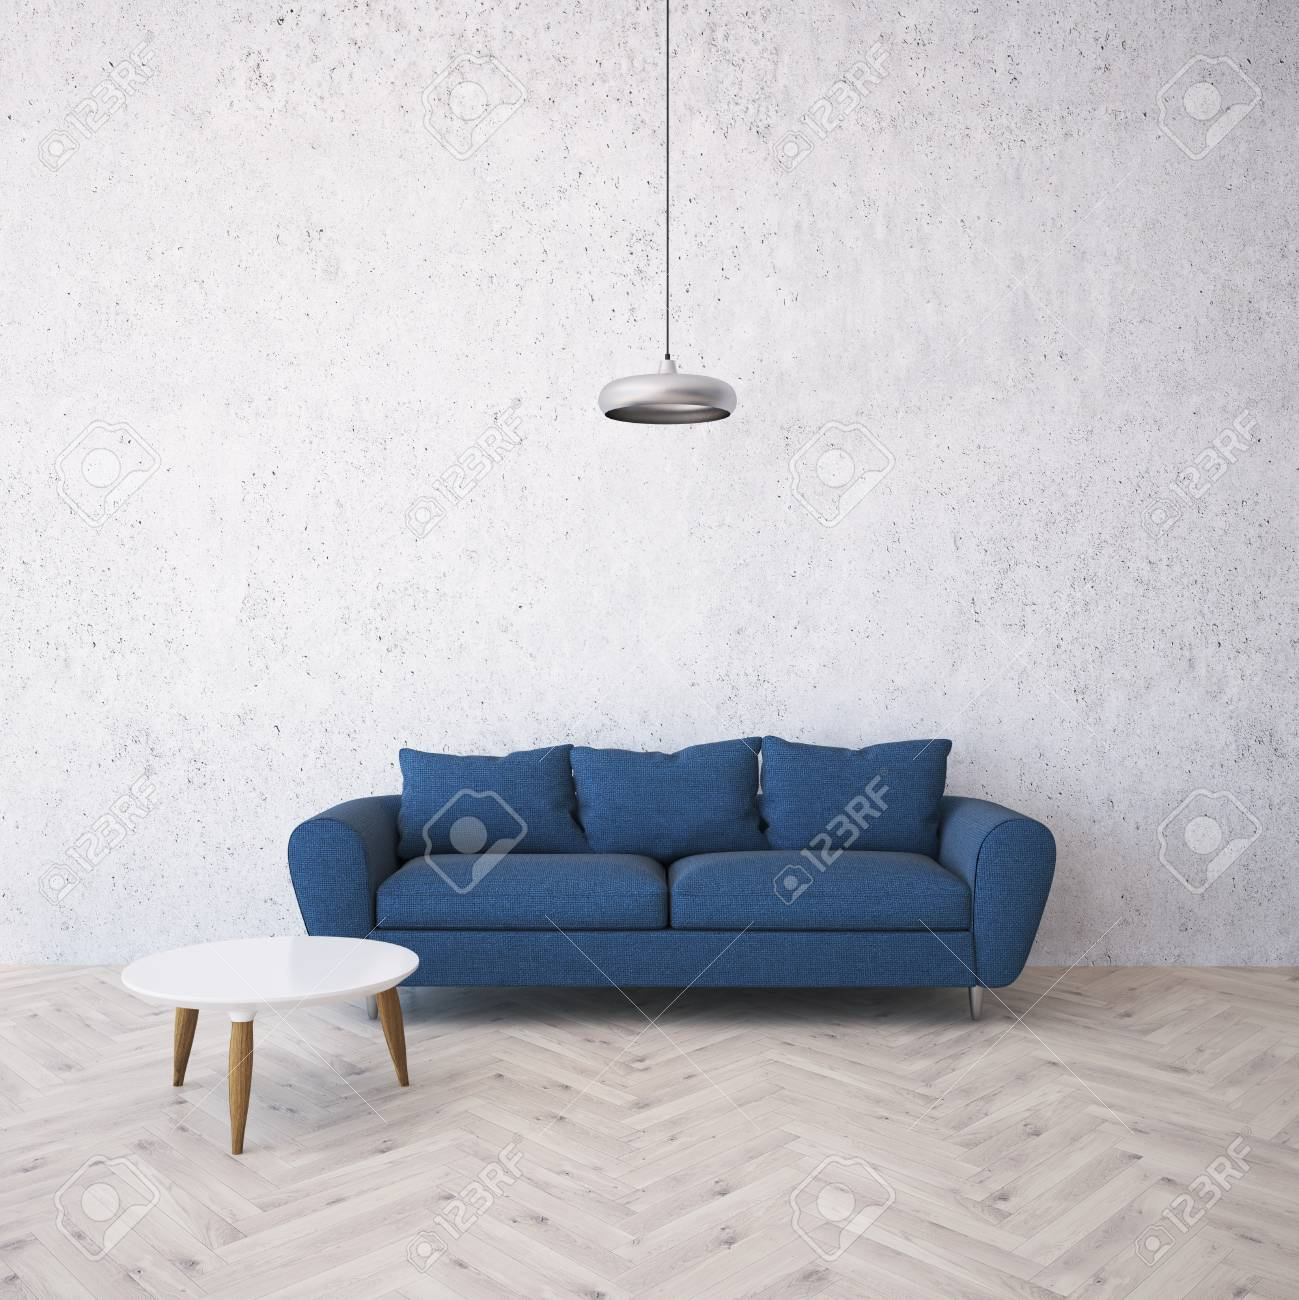 Concrete Wall Panoramic Living Room Interior With A Wooden Floor